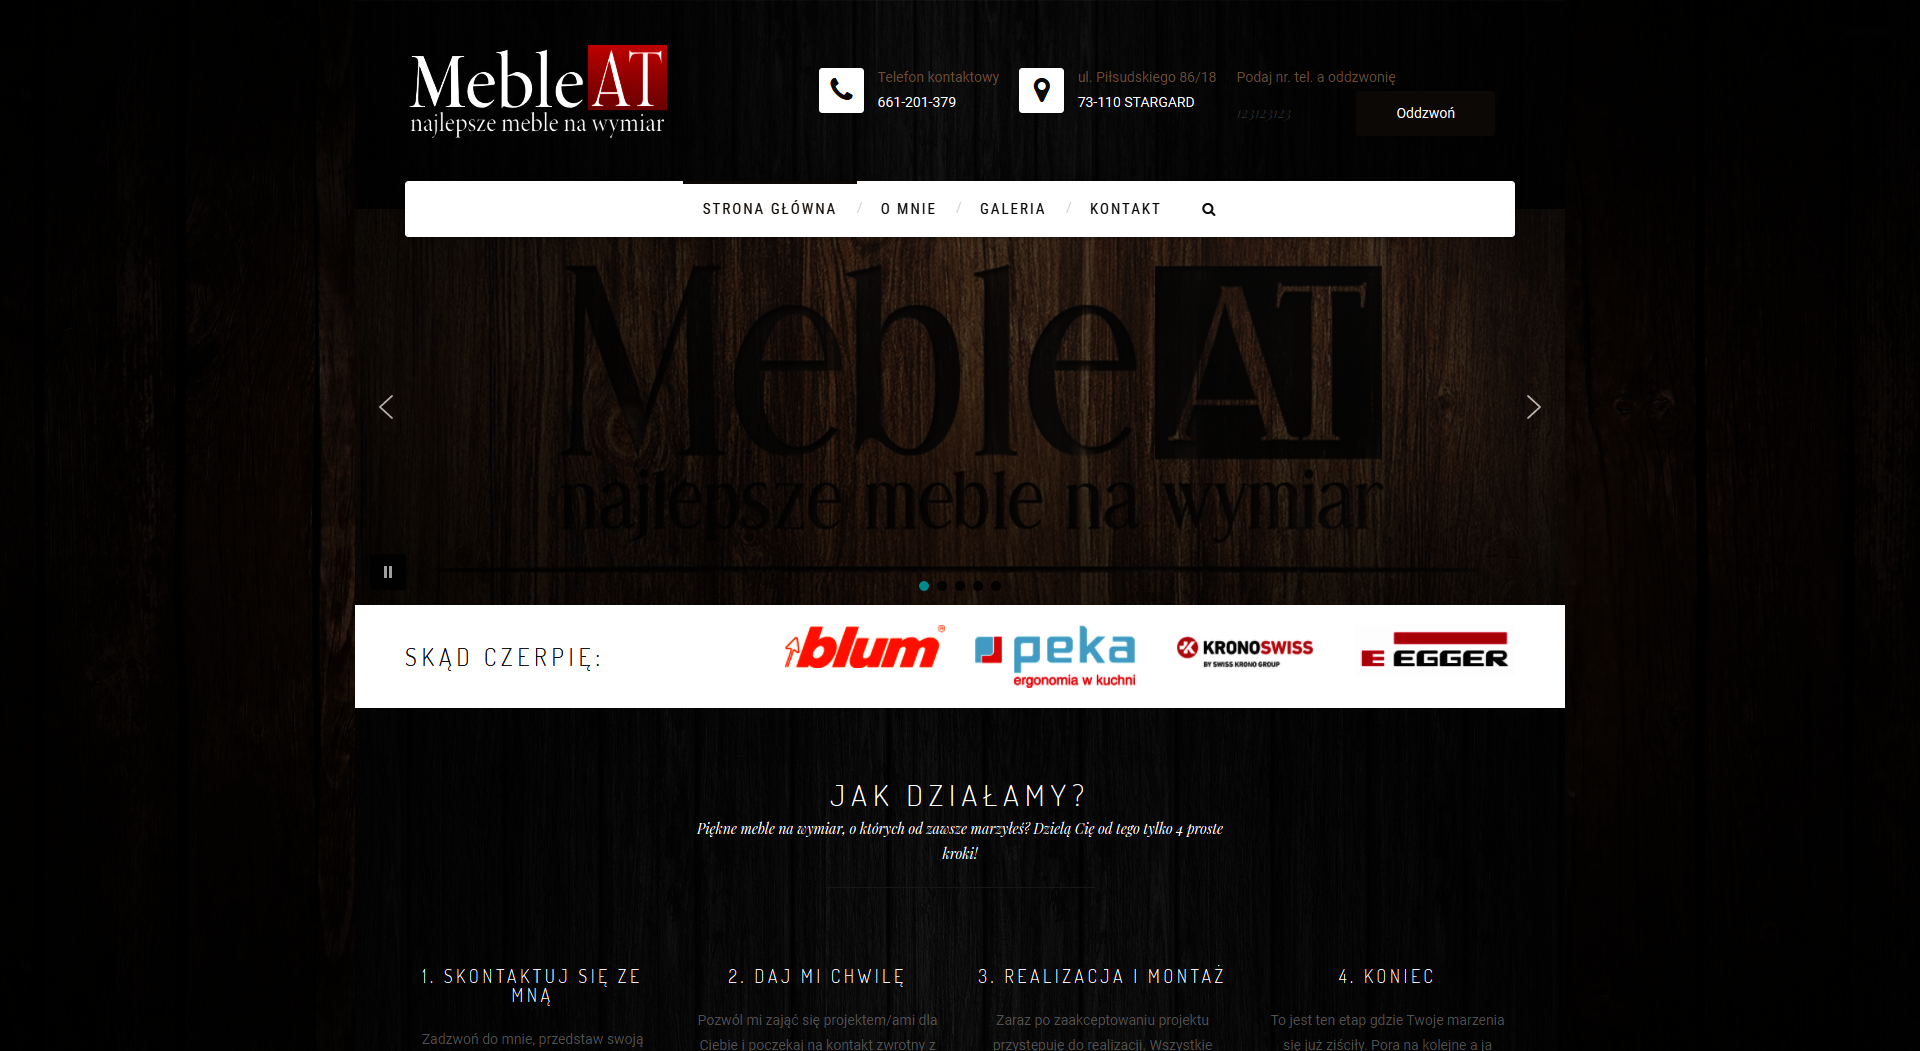 meble-at.pl